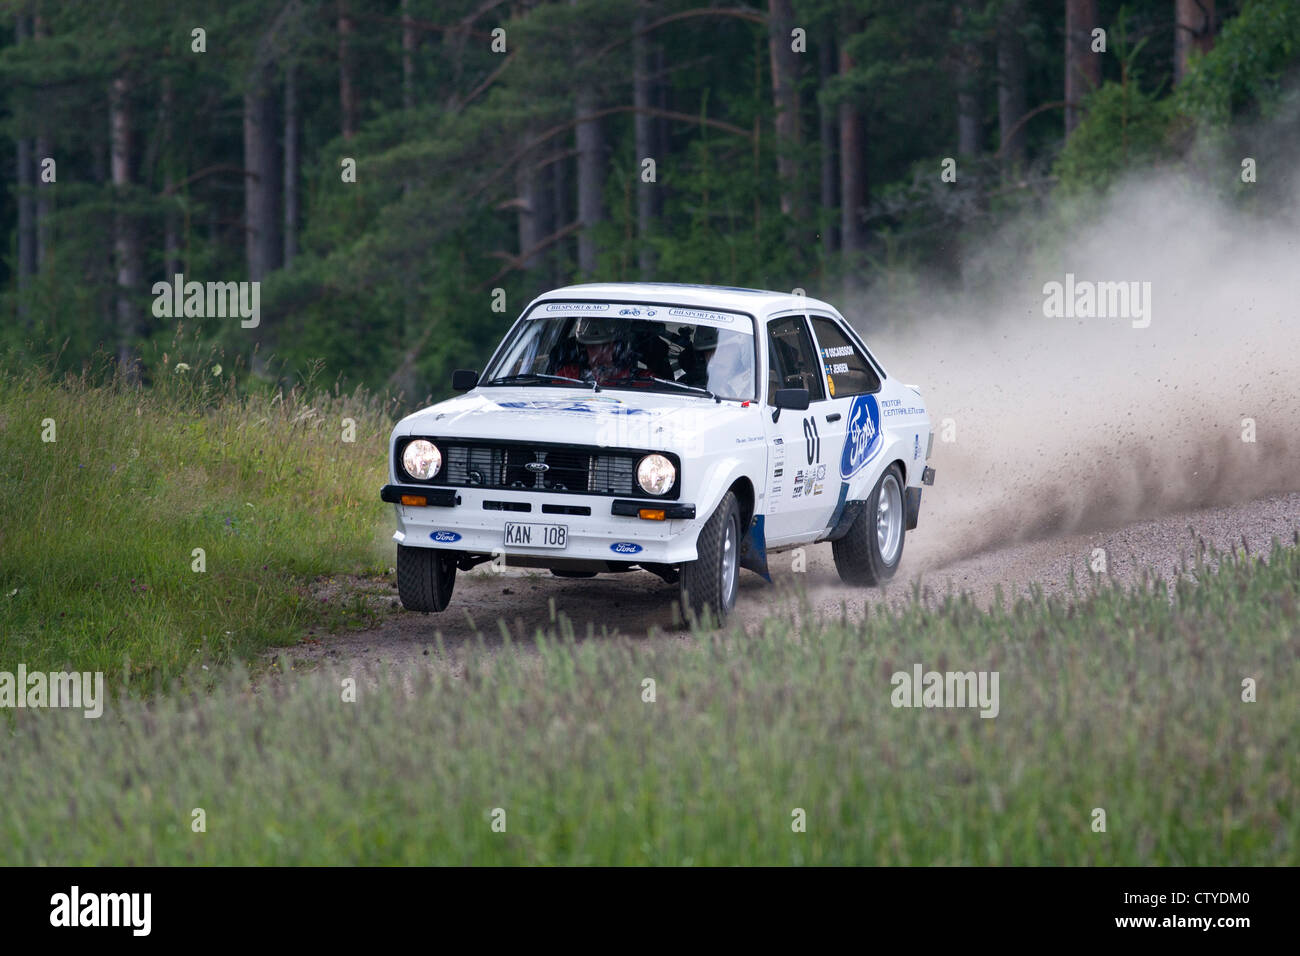 Old rally car on gravel road Stock Photo, Royalty Free Image ...